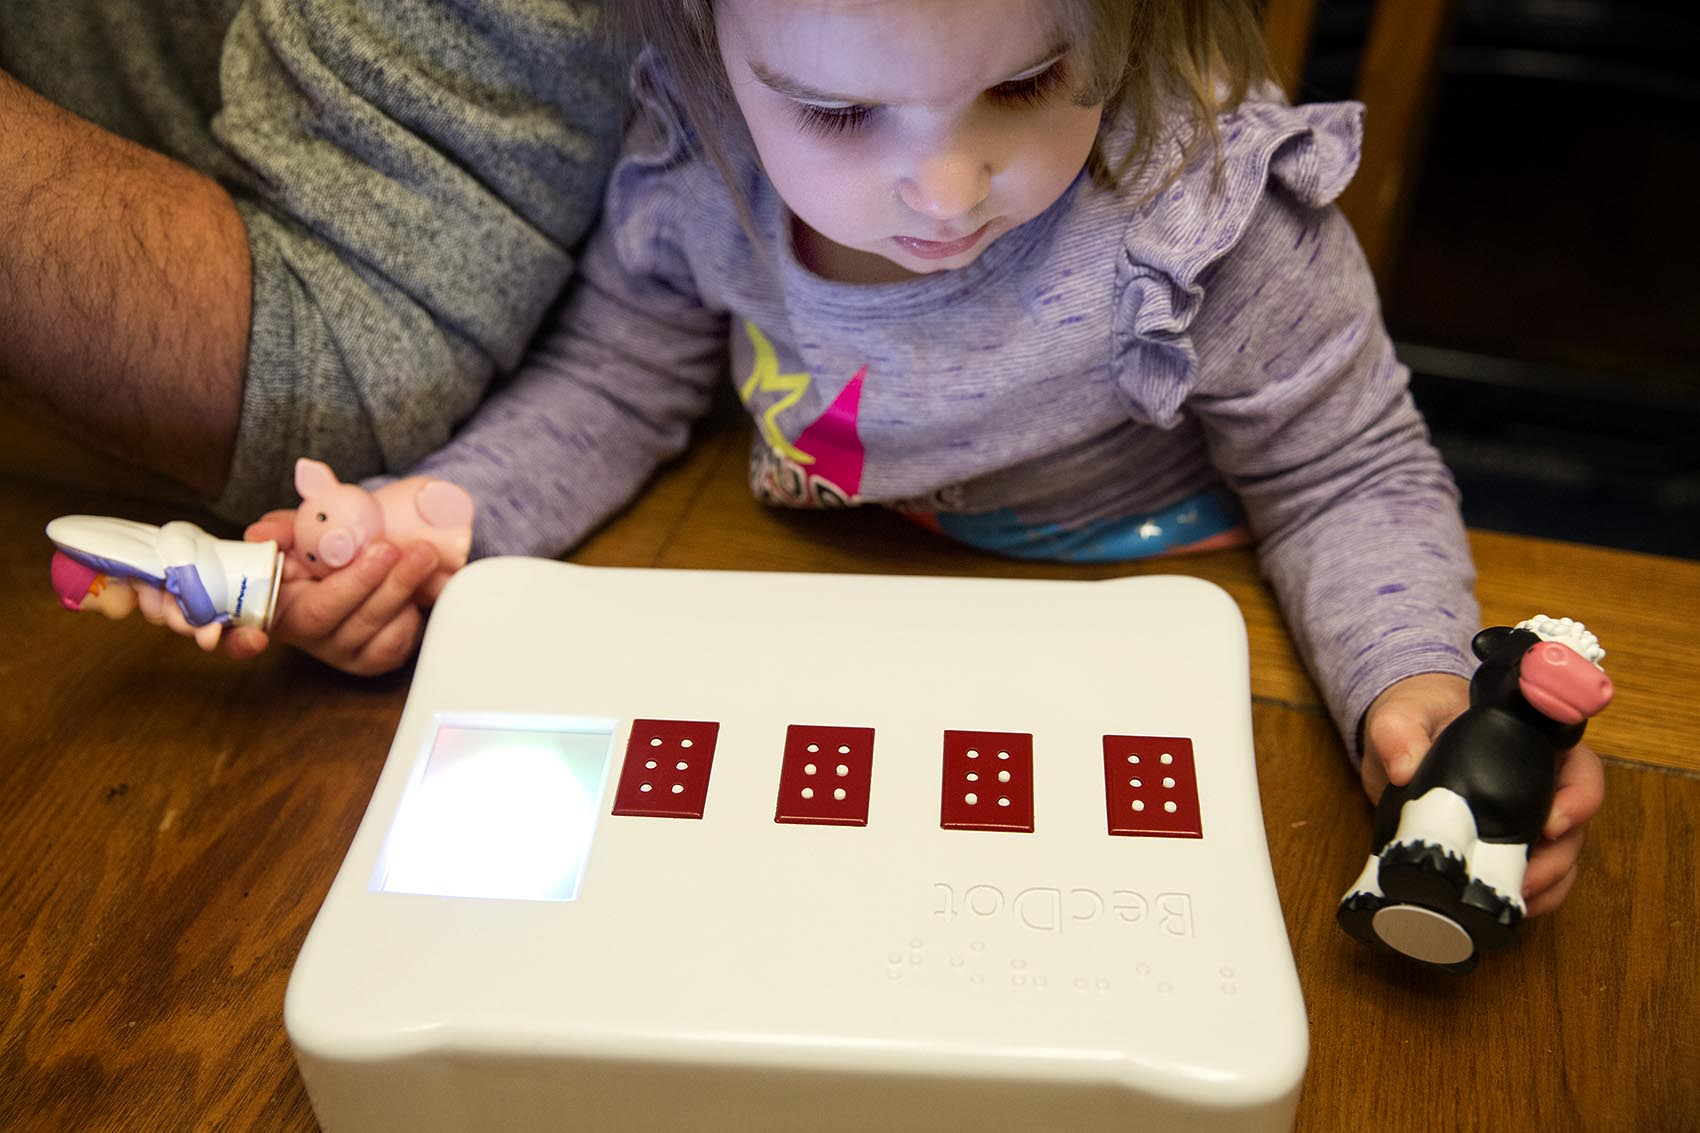 His 2 Year Old Daughter Is Slowly Going Blind So He Invented A Game